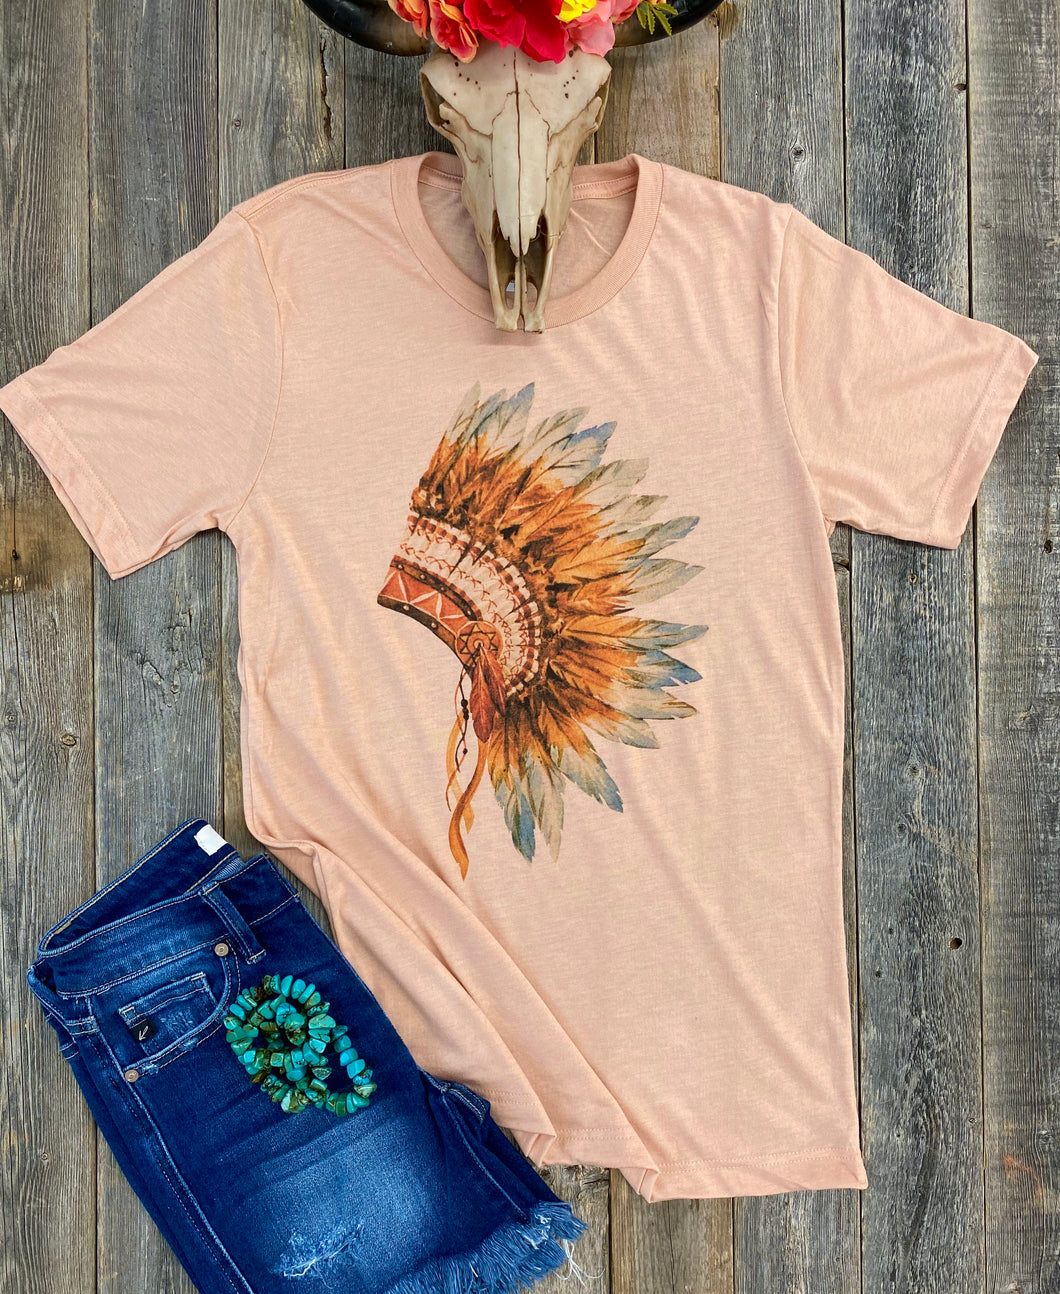 The Feathered Chief T-Shirt